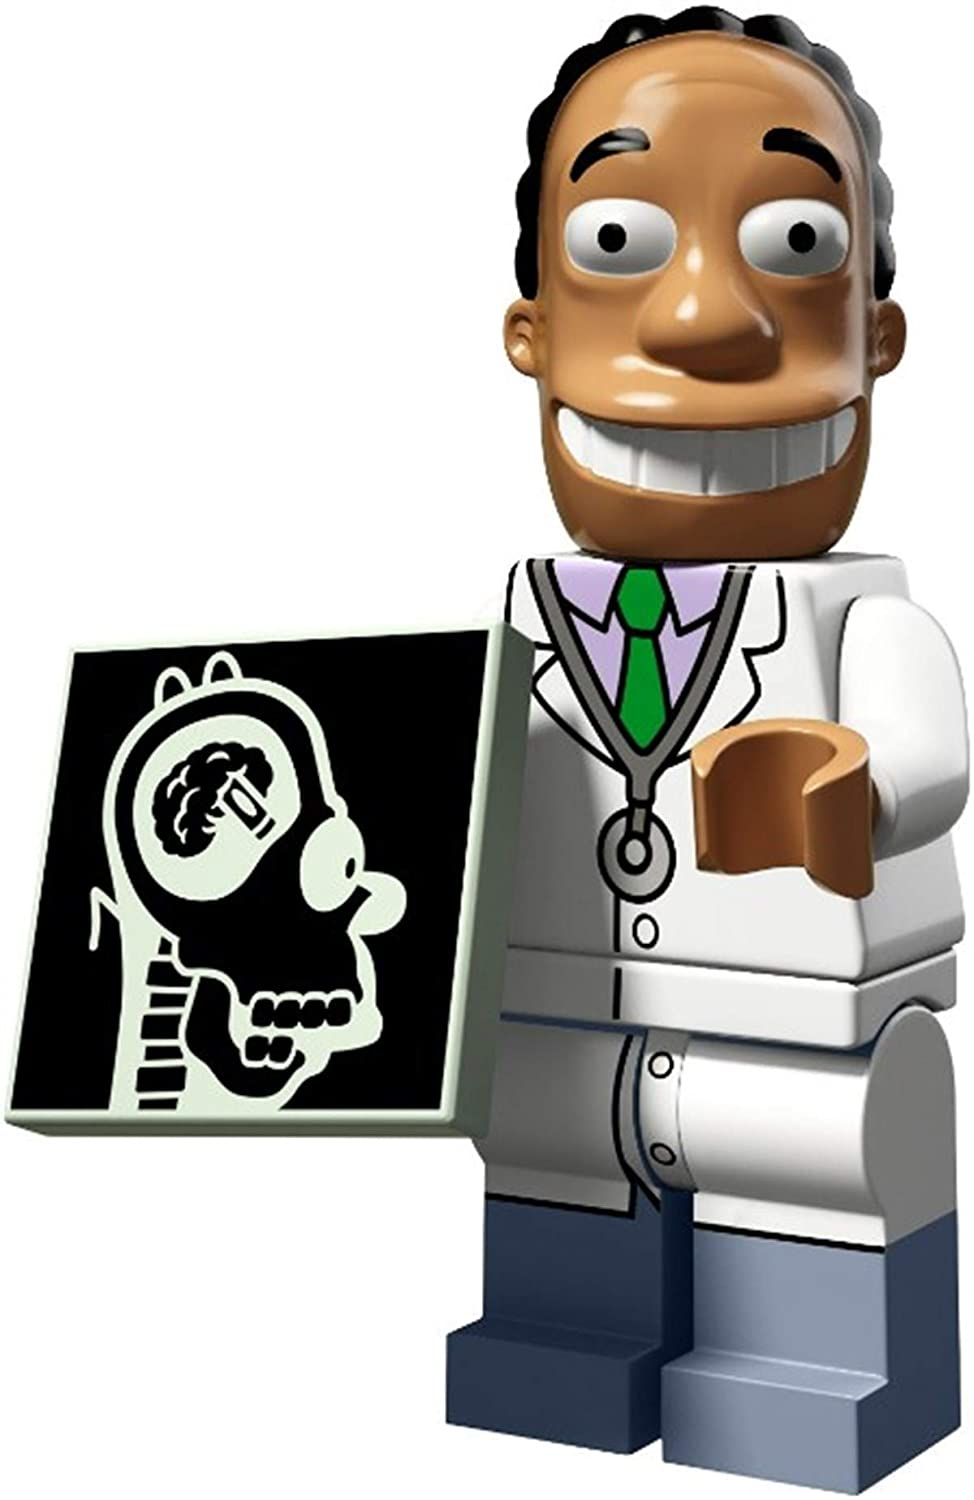 LEGO Simpsons Series 2 71009 MINIFIGURE - DR. HIBBERT DOCTOR